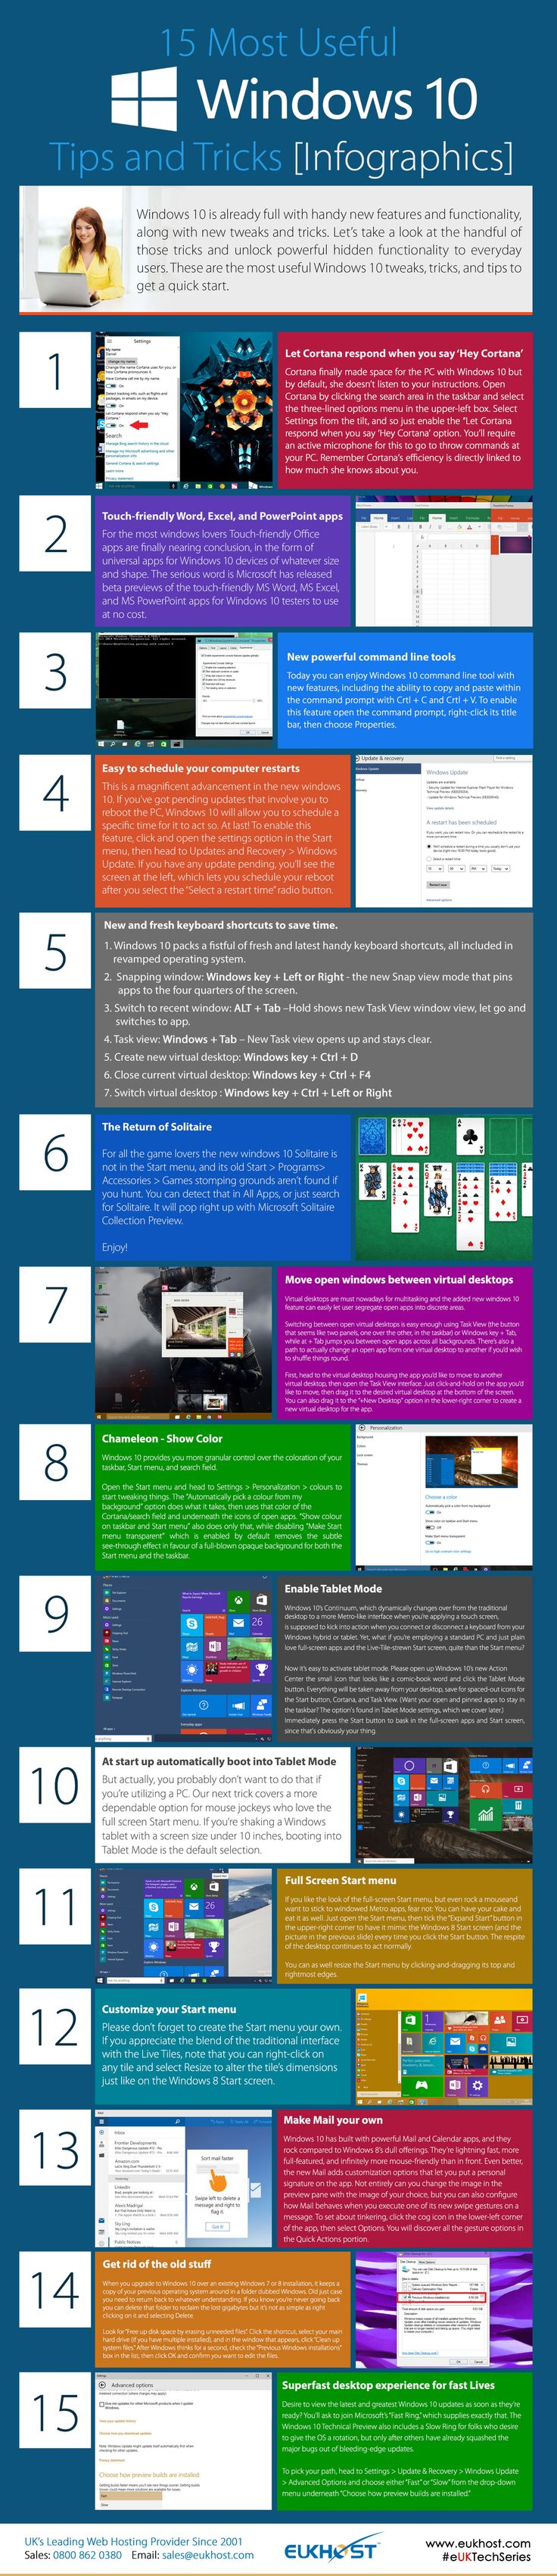 15 Most Useful #windows10 Tips and Tricks Infographics Read more: http://euk.host/ssb5aug15 Web Hosting offer: http://euk.host/ssf5aug15 #eukhost